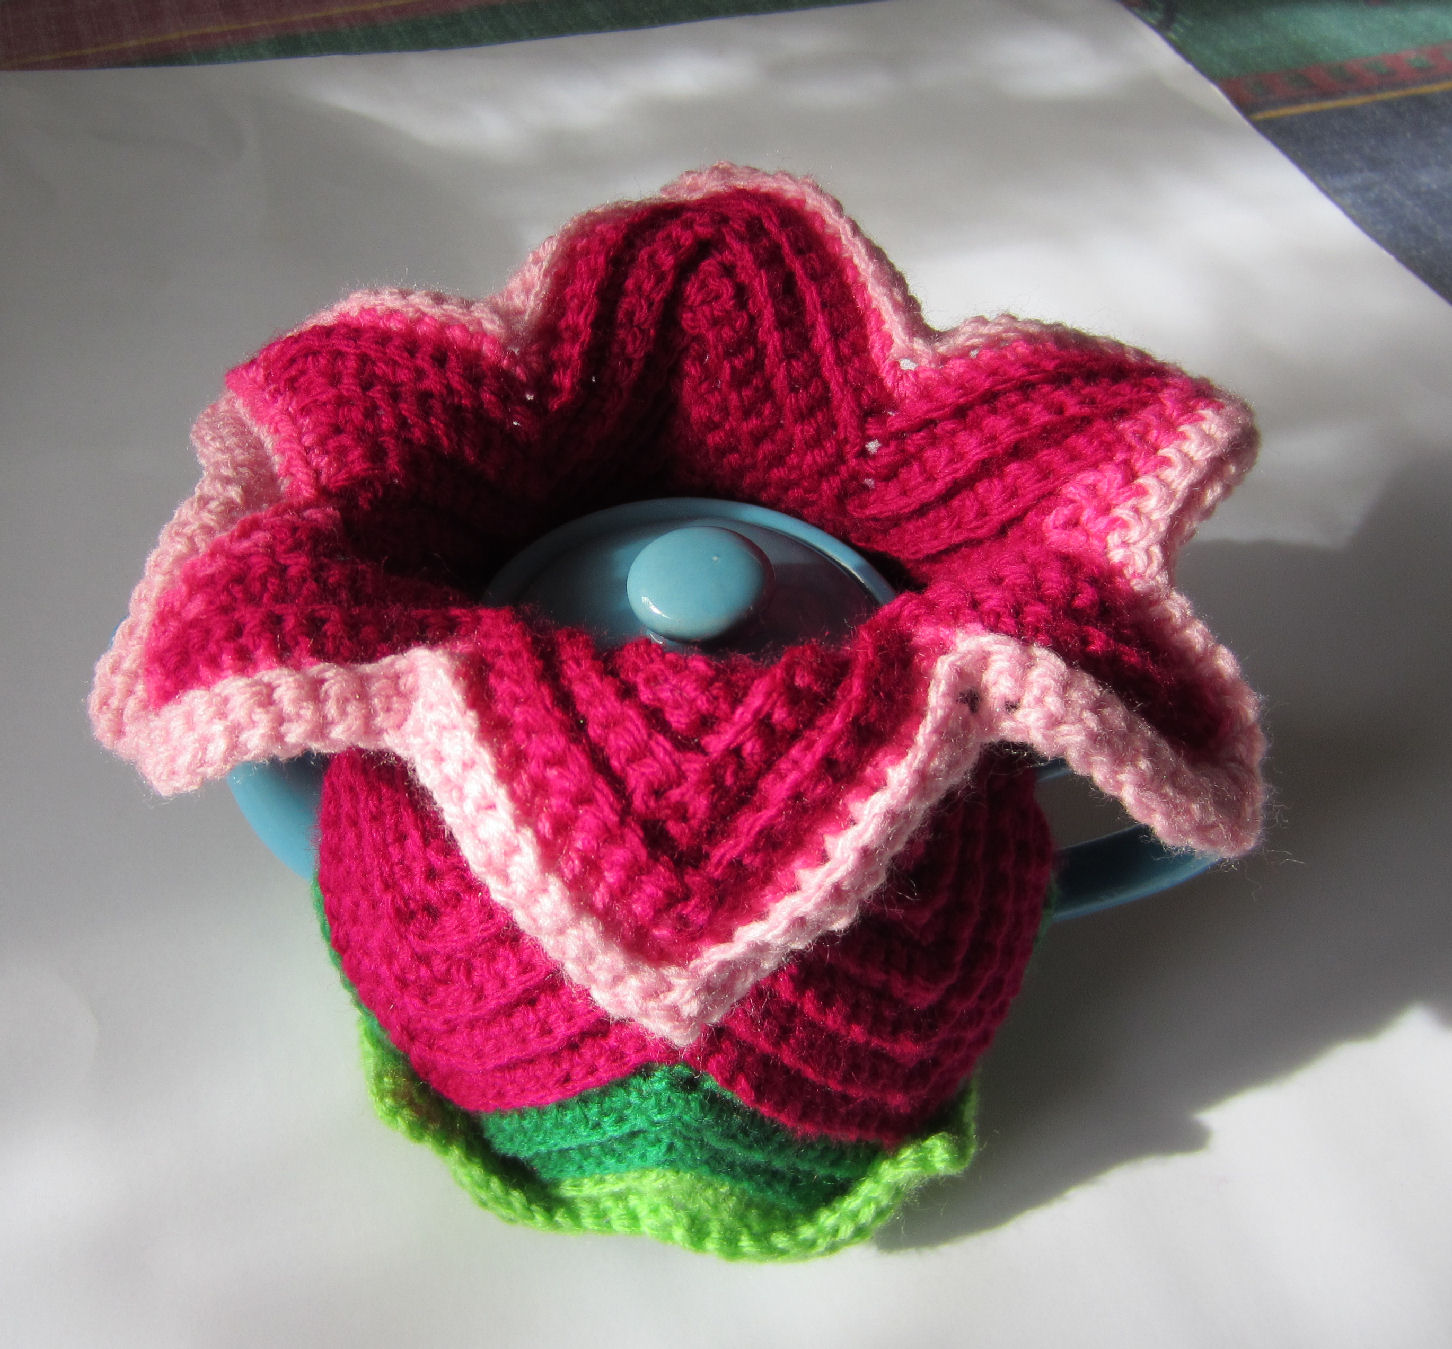 Justjen knitsstitches daylily tea cosy for mothers day crochet daylily tea cosy crochet justjen knitsstitches bankloansurffo Choice Image